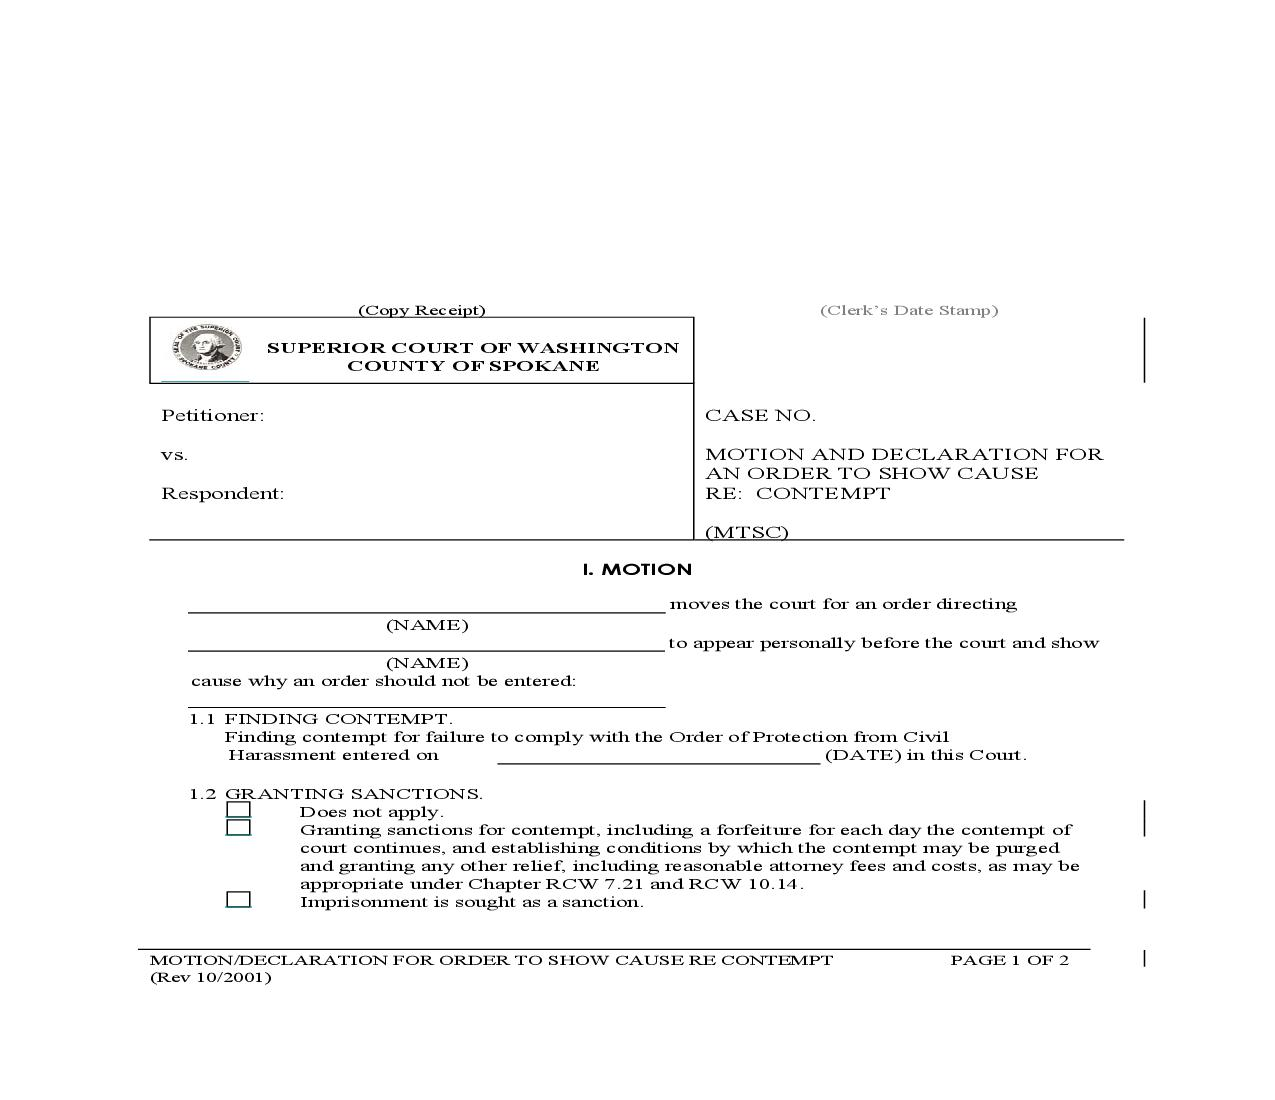 Motion And Declaration For Order To Show Cause Re Contempt   Pdf Fpdf Doc Docx   Washington